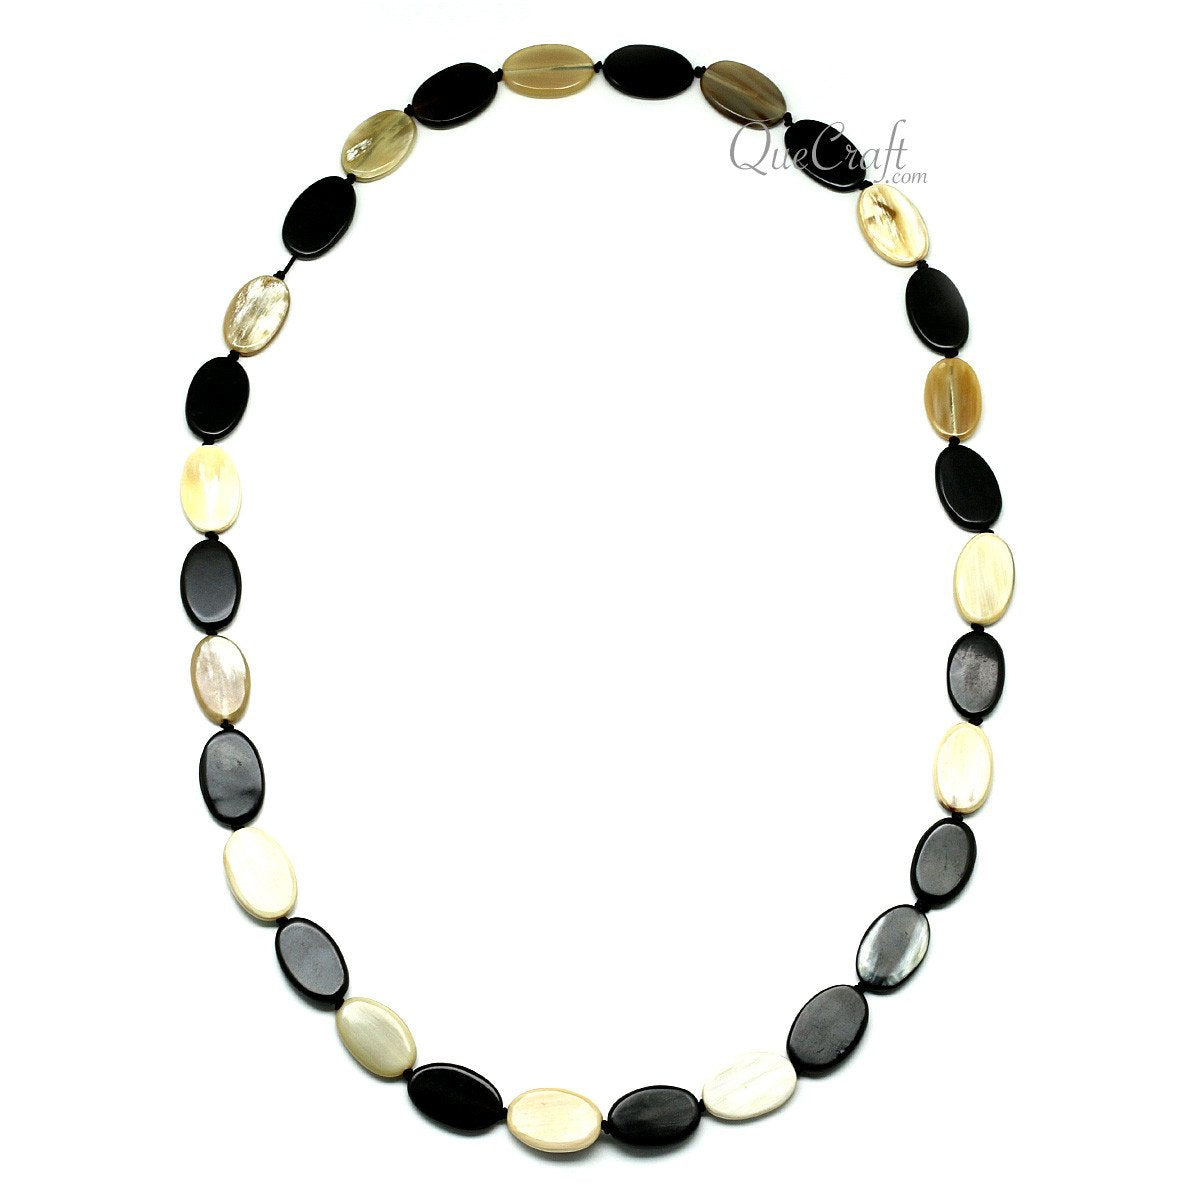 Horn Beaded Necklace #11893 - HORN.JEWELRY by QueCraft